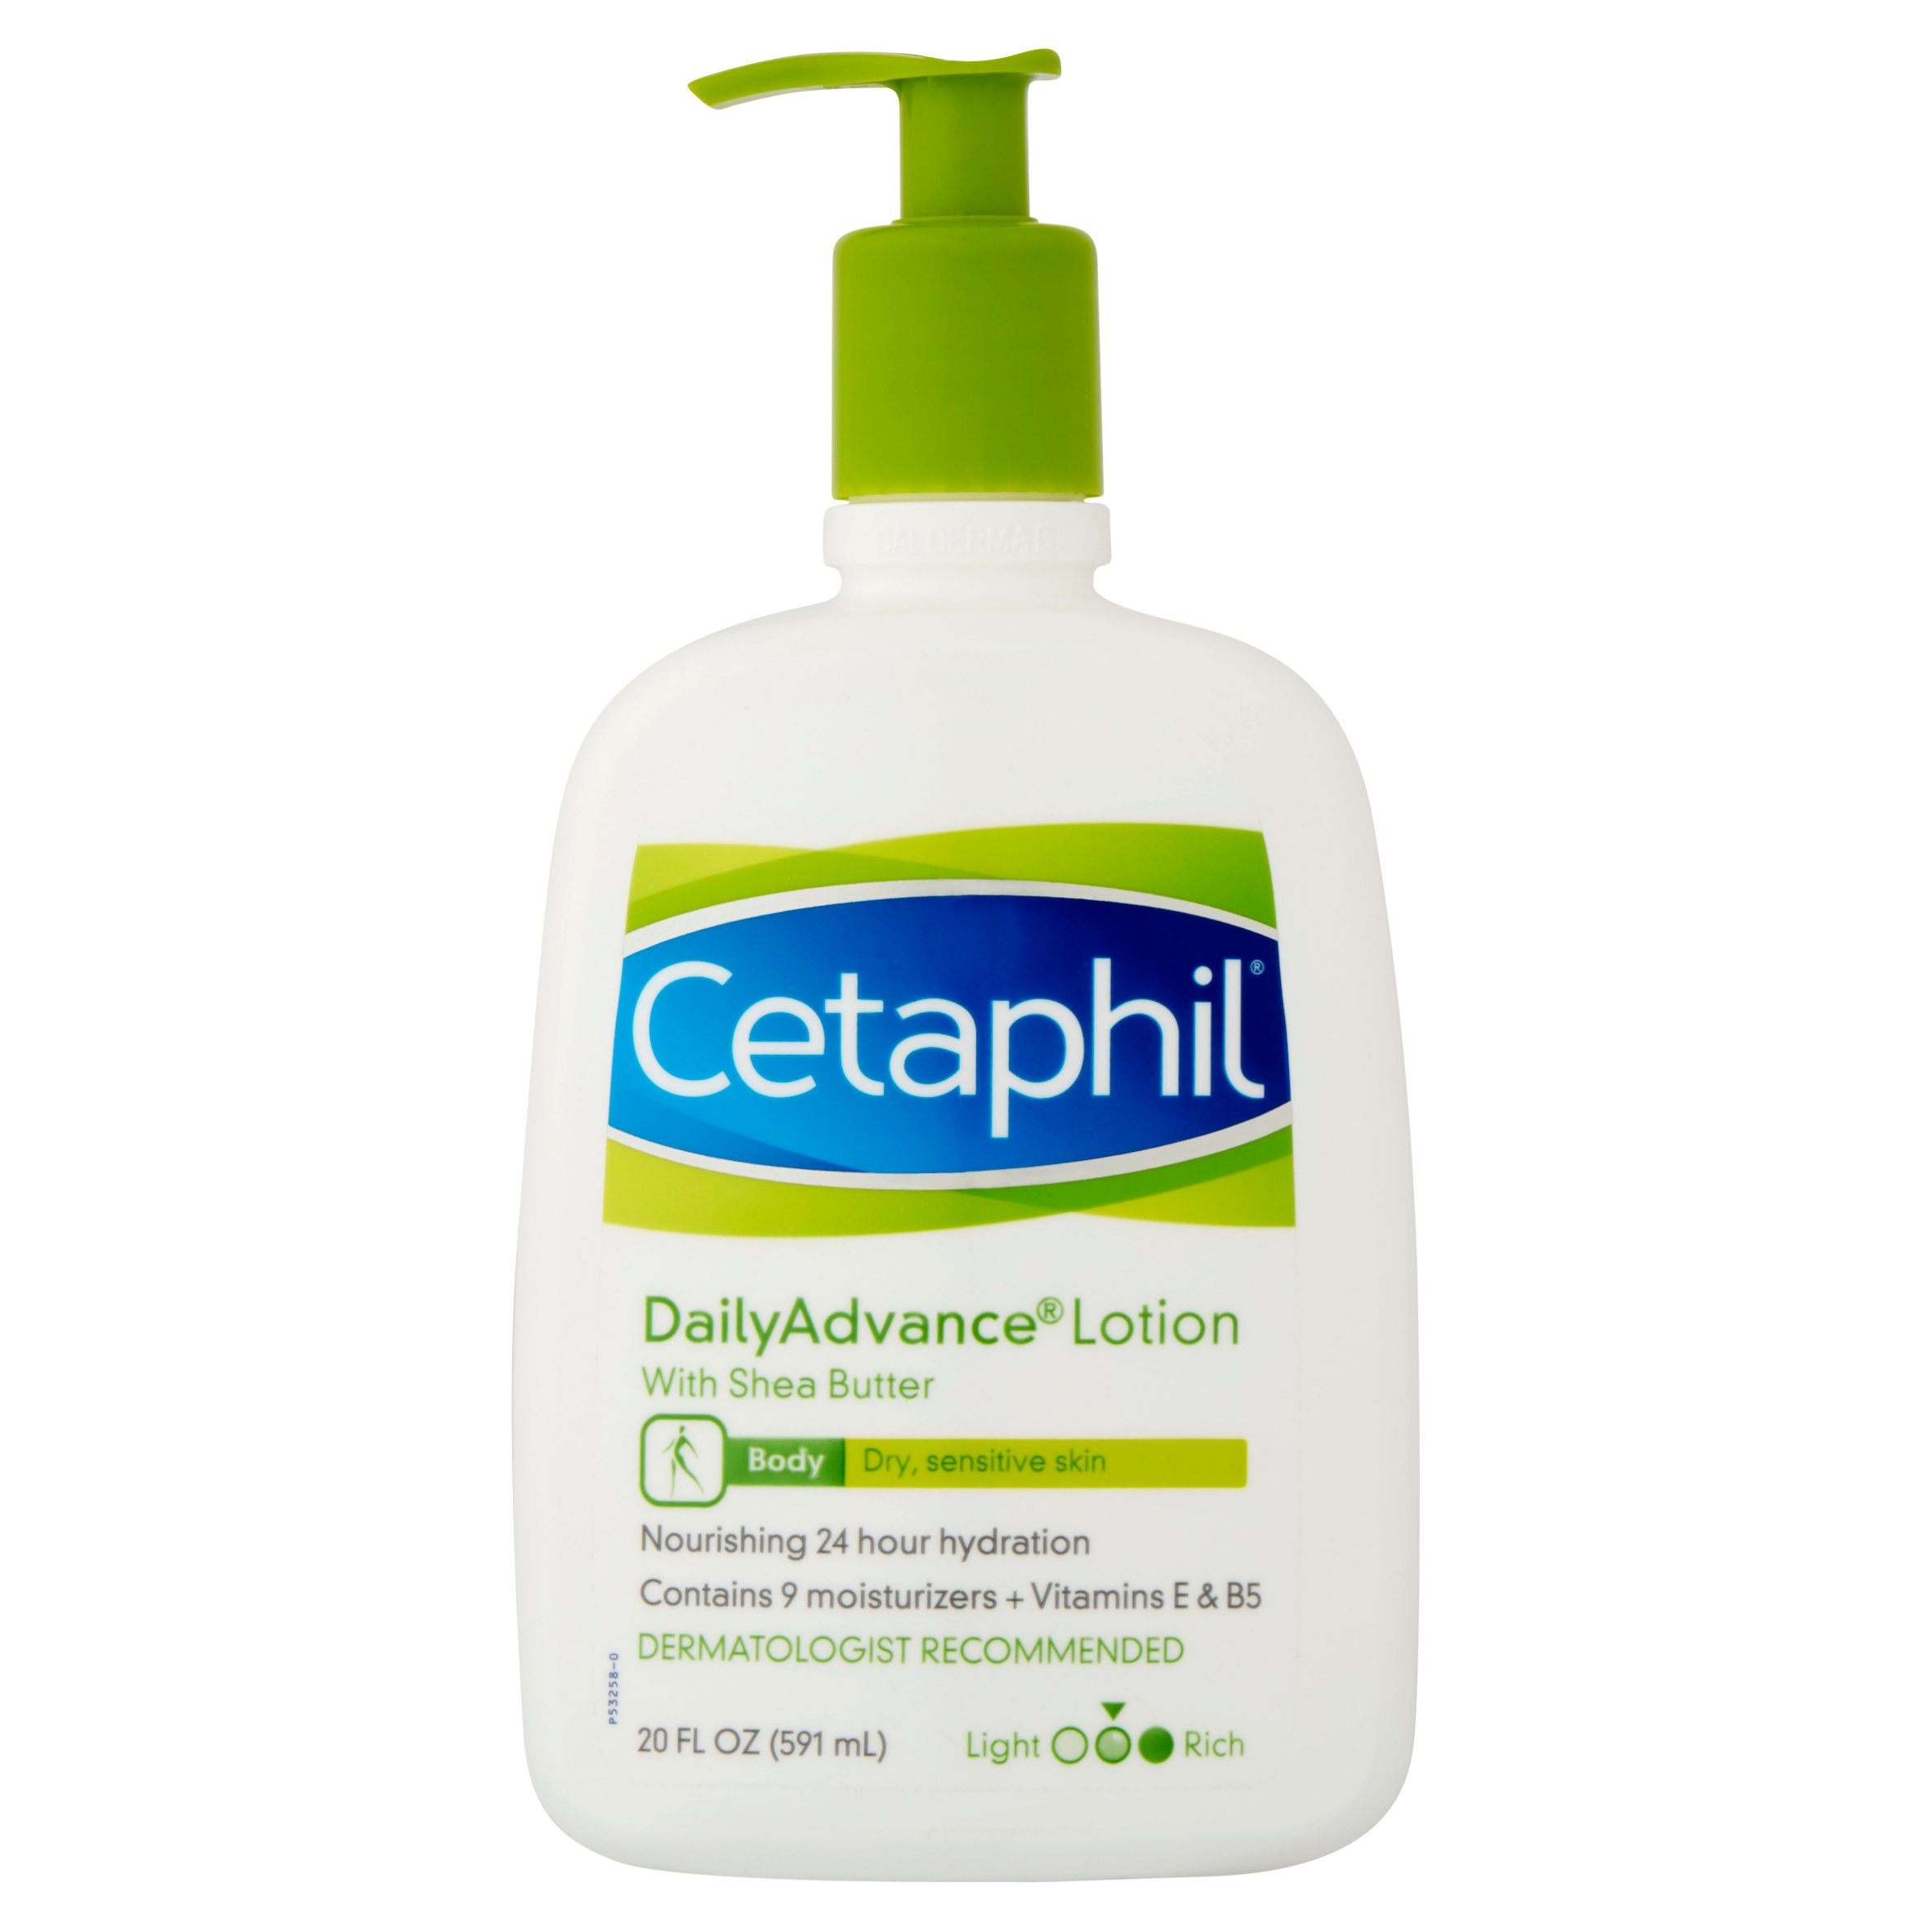 Cetaphil DailyAdvance Lotion with Shea Butter, 20 fl oz